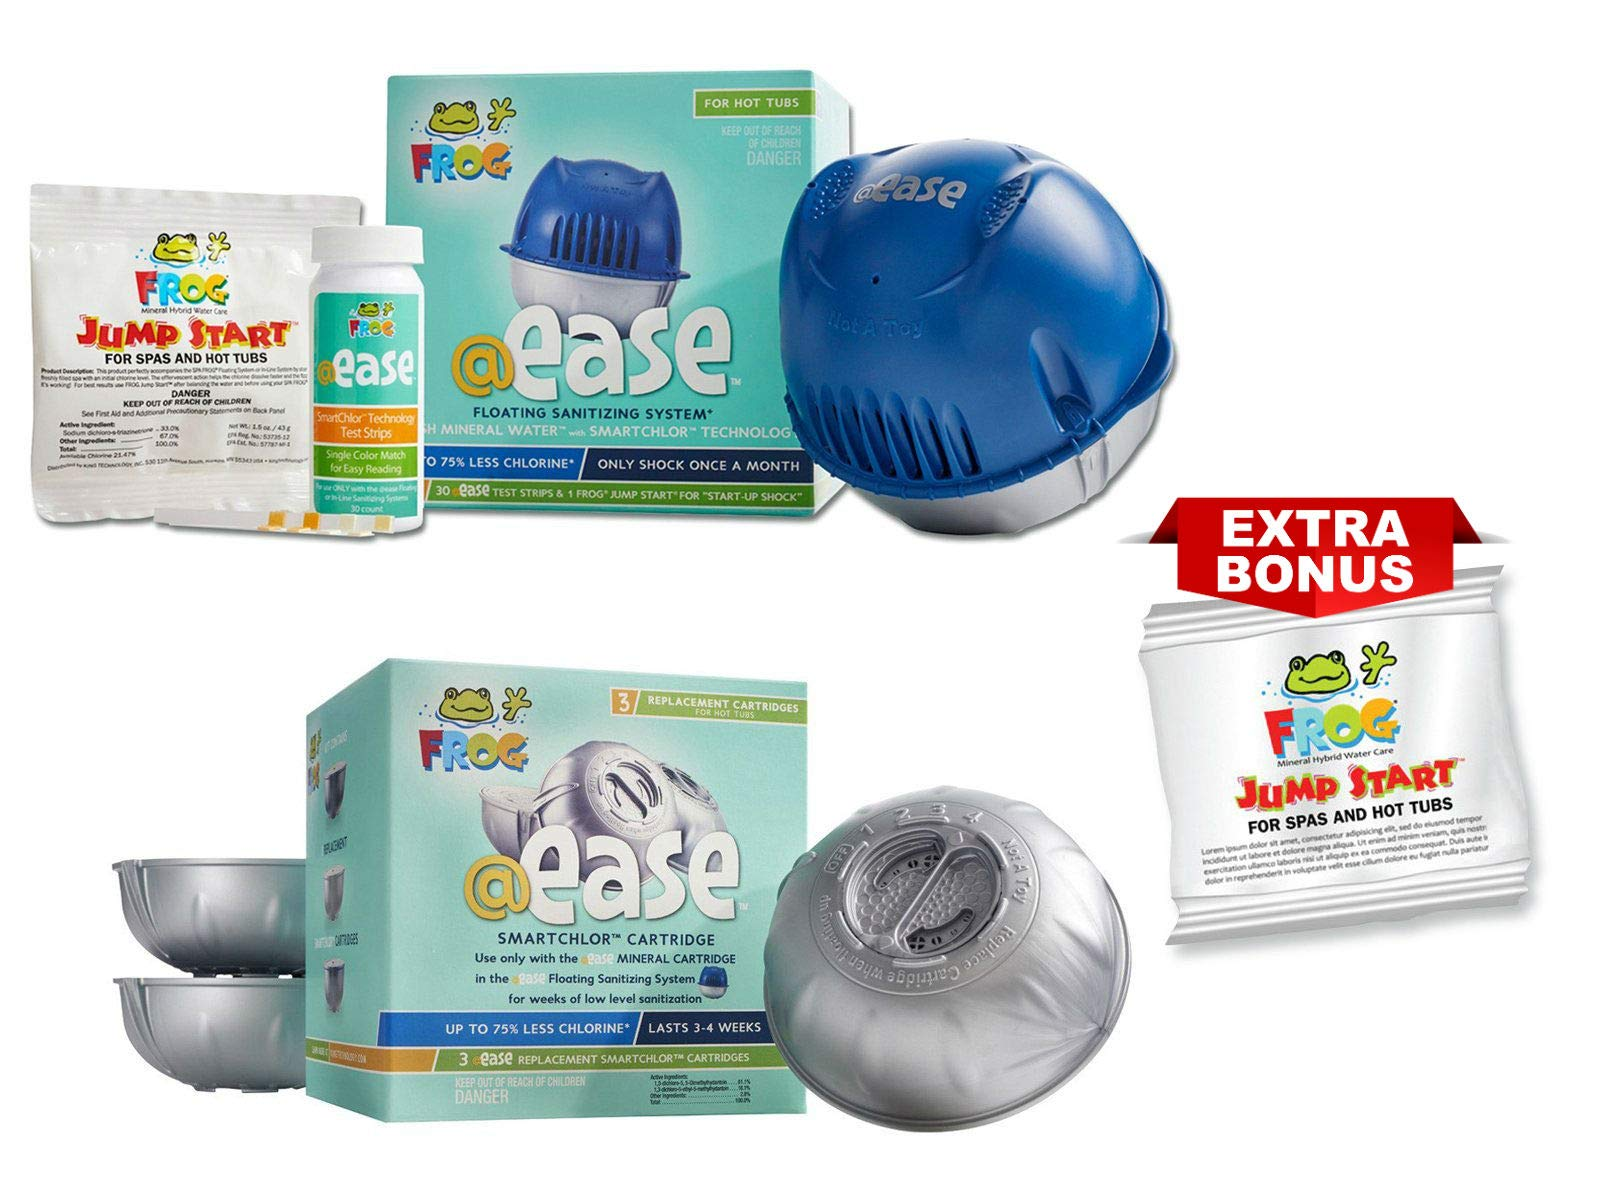 Frog Spa Ease Floating Sanitizing System and 3 Refill SmartChlor @ Ease Replacement Mineral Cartridges, 30 Test Strips, Jump Start Shock Plus One Extra Bonus Jump Start Shock Pack (2) by Frog